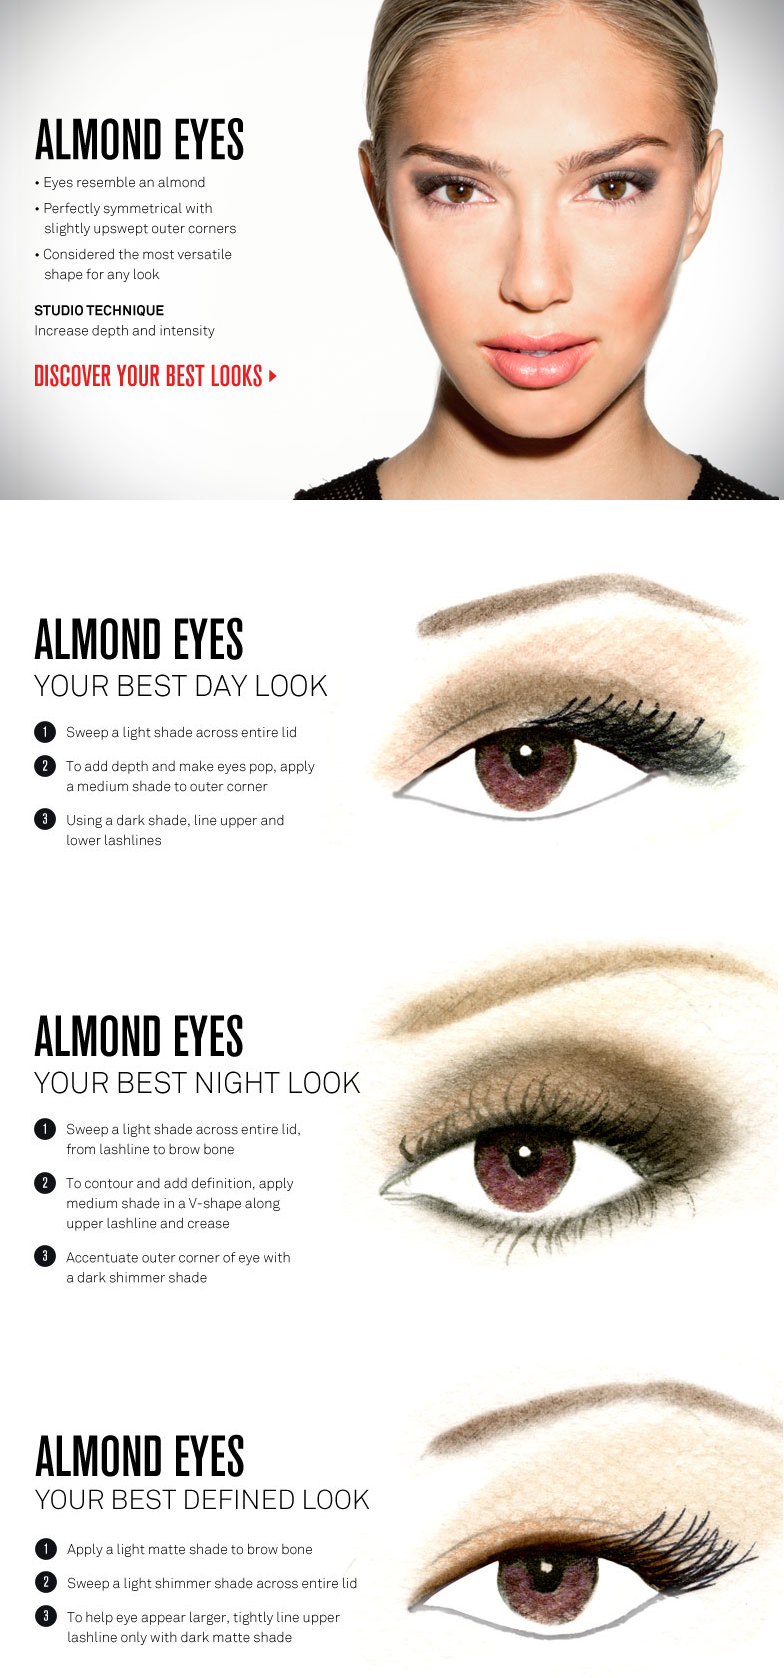 Eye Makeup For Almond Eyes By Smashbox Make Me Up Pinterest